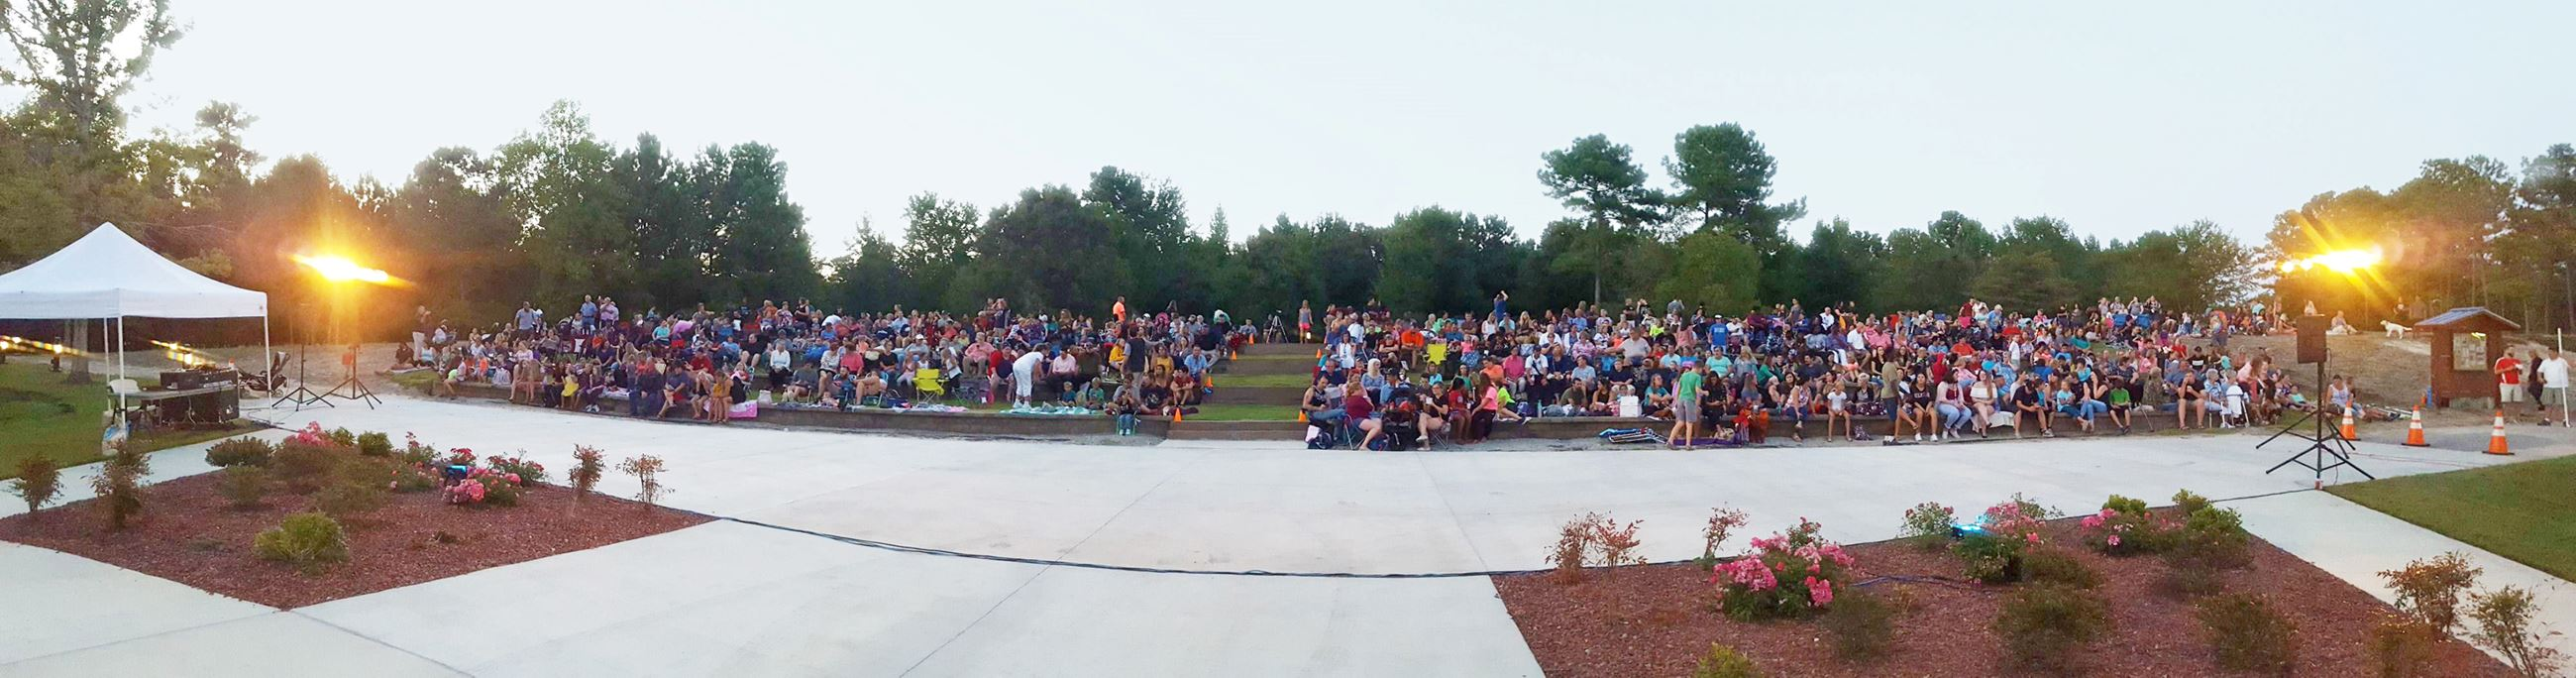 Jacksonville Commons Amphitheater